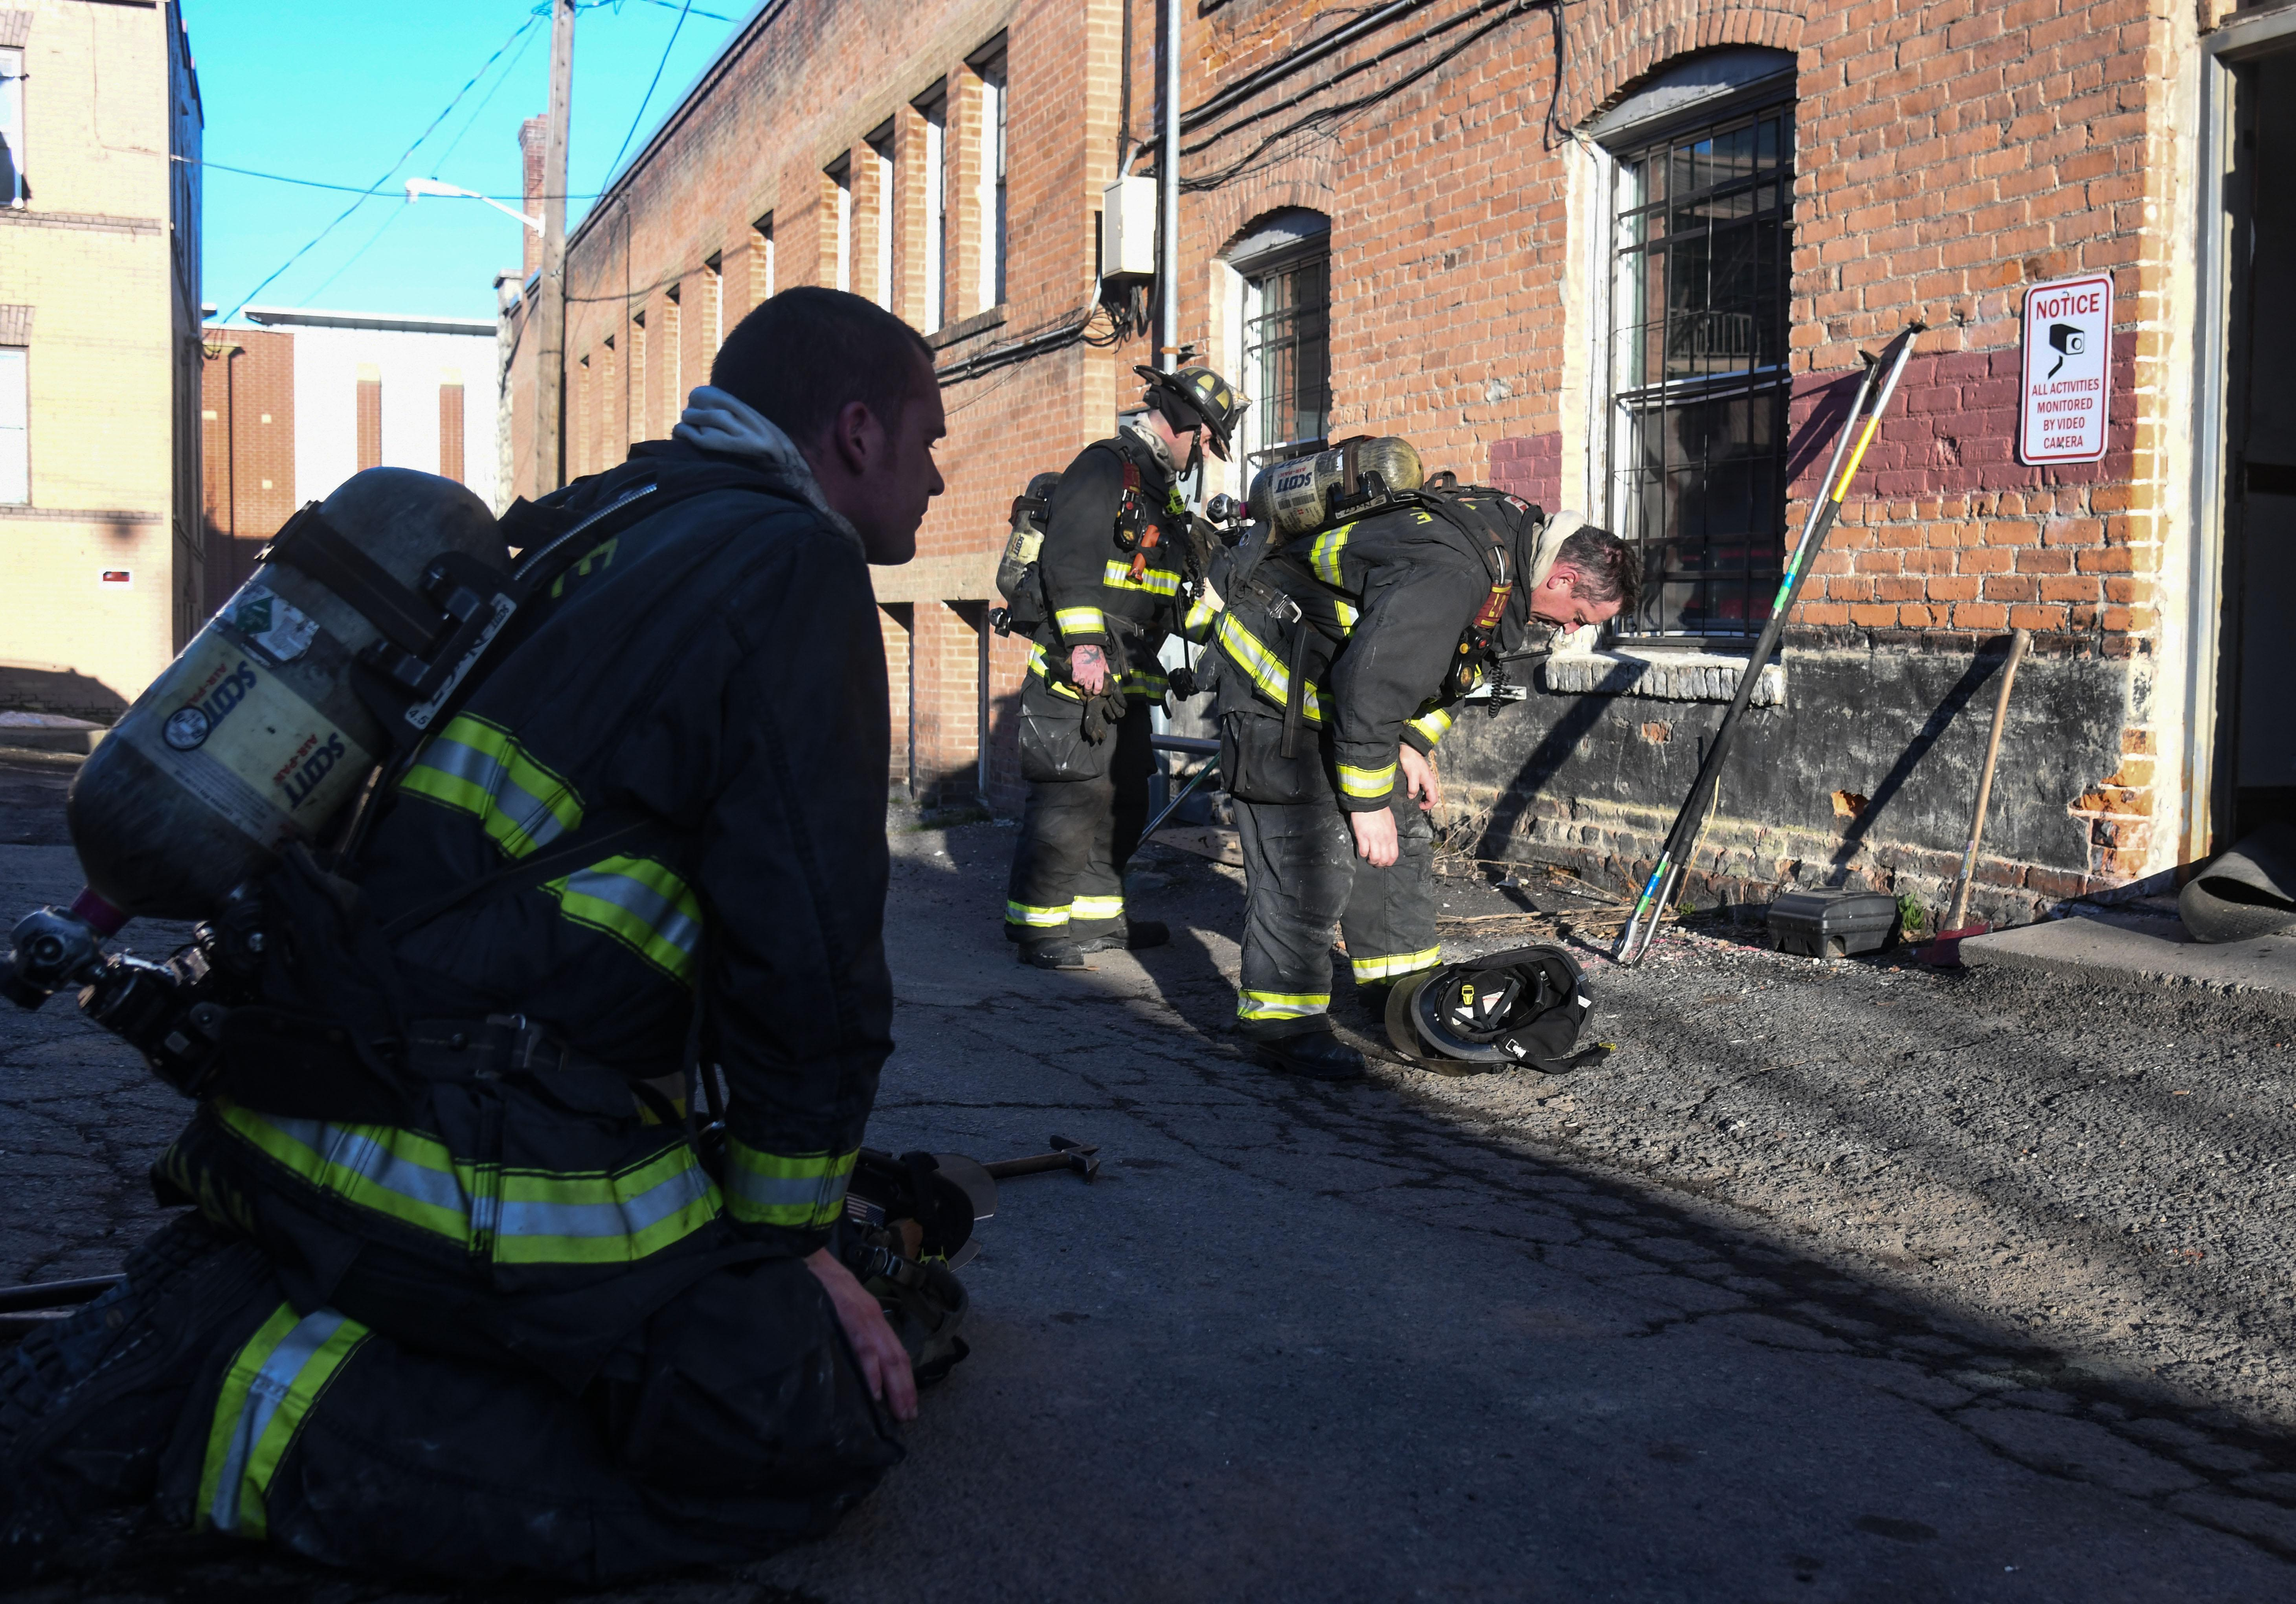 Spokane Fire Station 1 Ladder Firefighters Catch Their Breath In The Alley After Overhauling Rooms